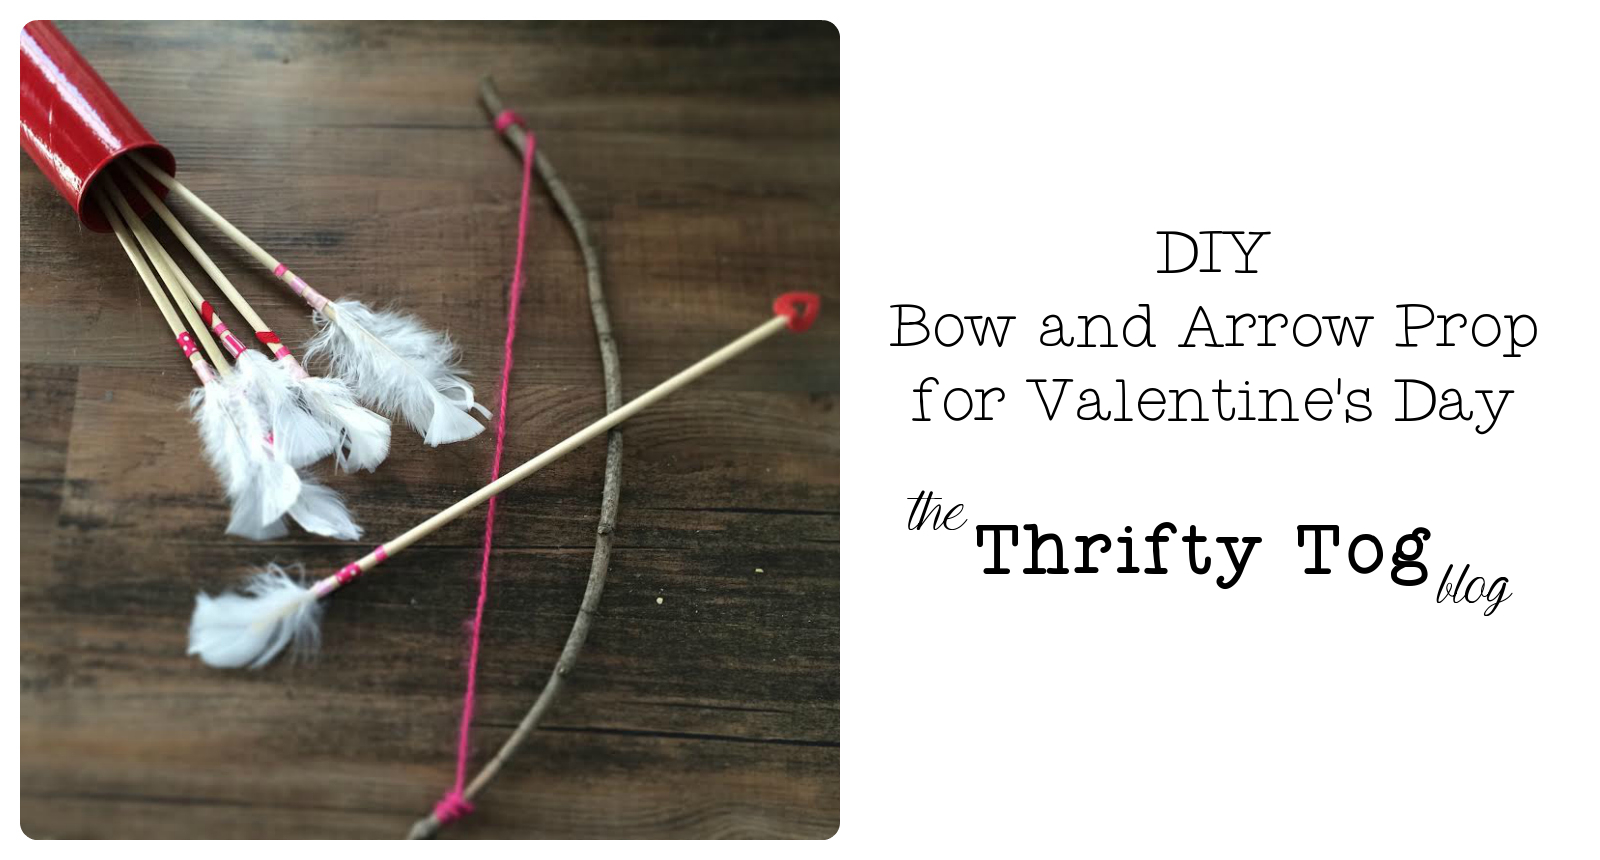 Diy Bow And Arrow Prop For Valentine S Day By Erin Barkel